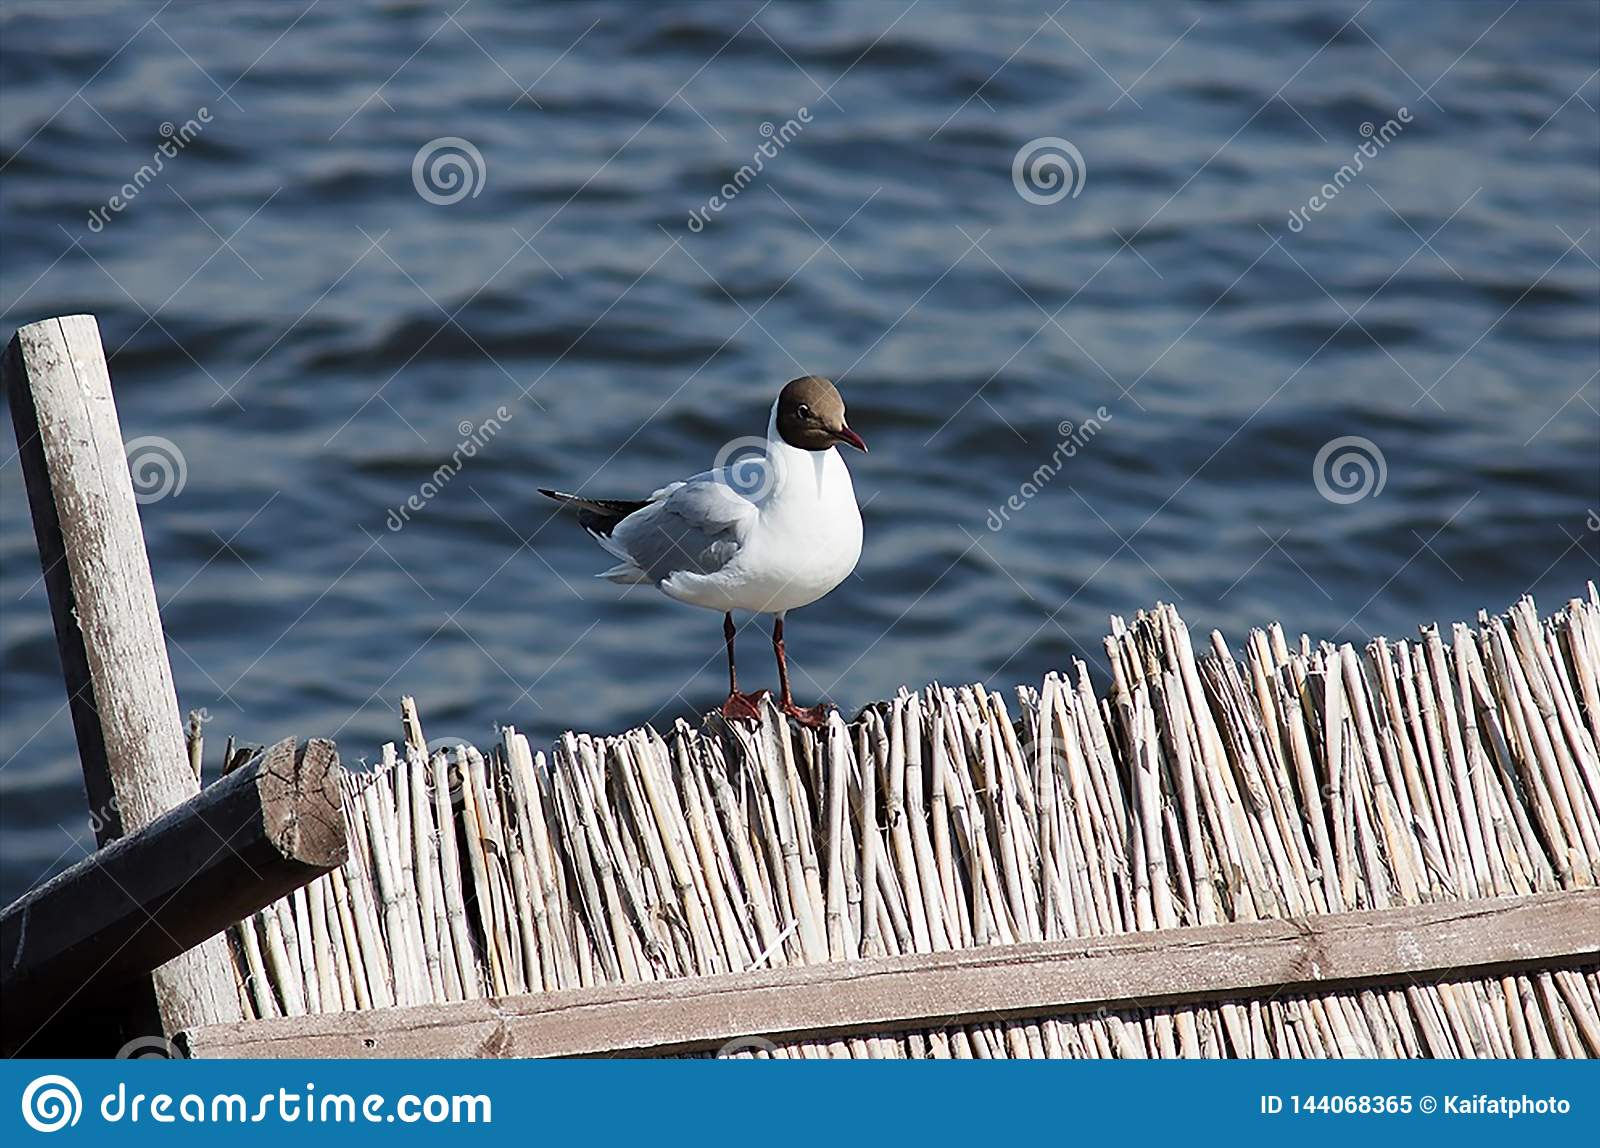 A seagull is sitting on the fence on the background of water